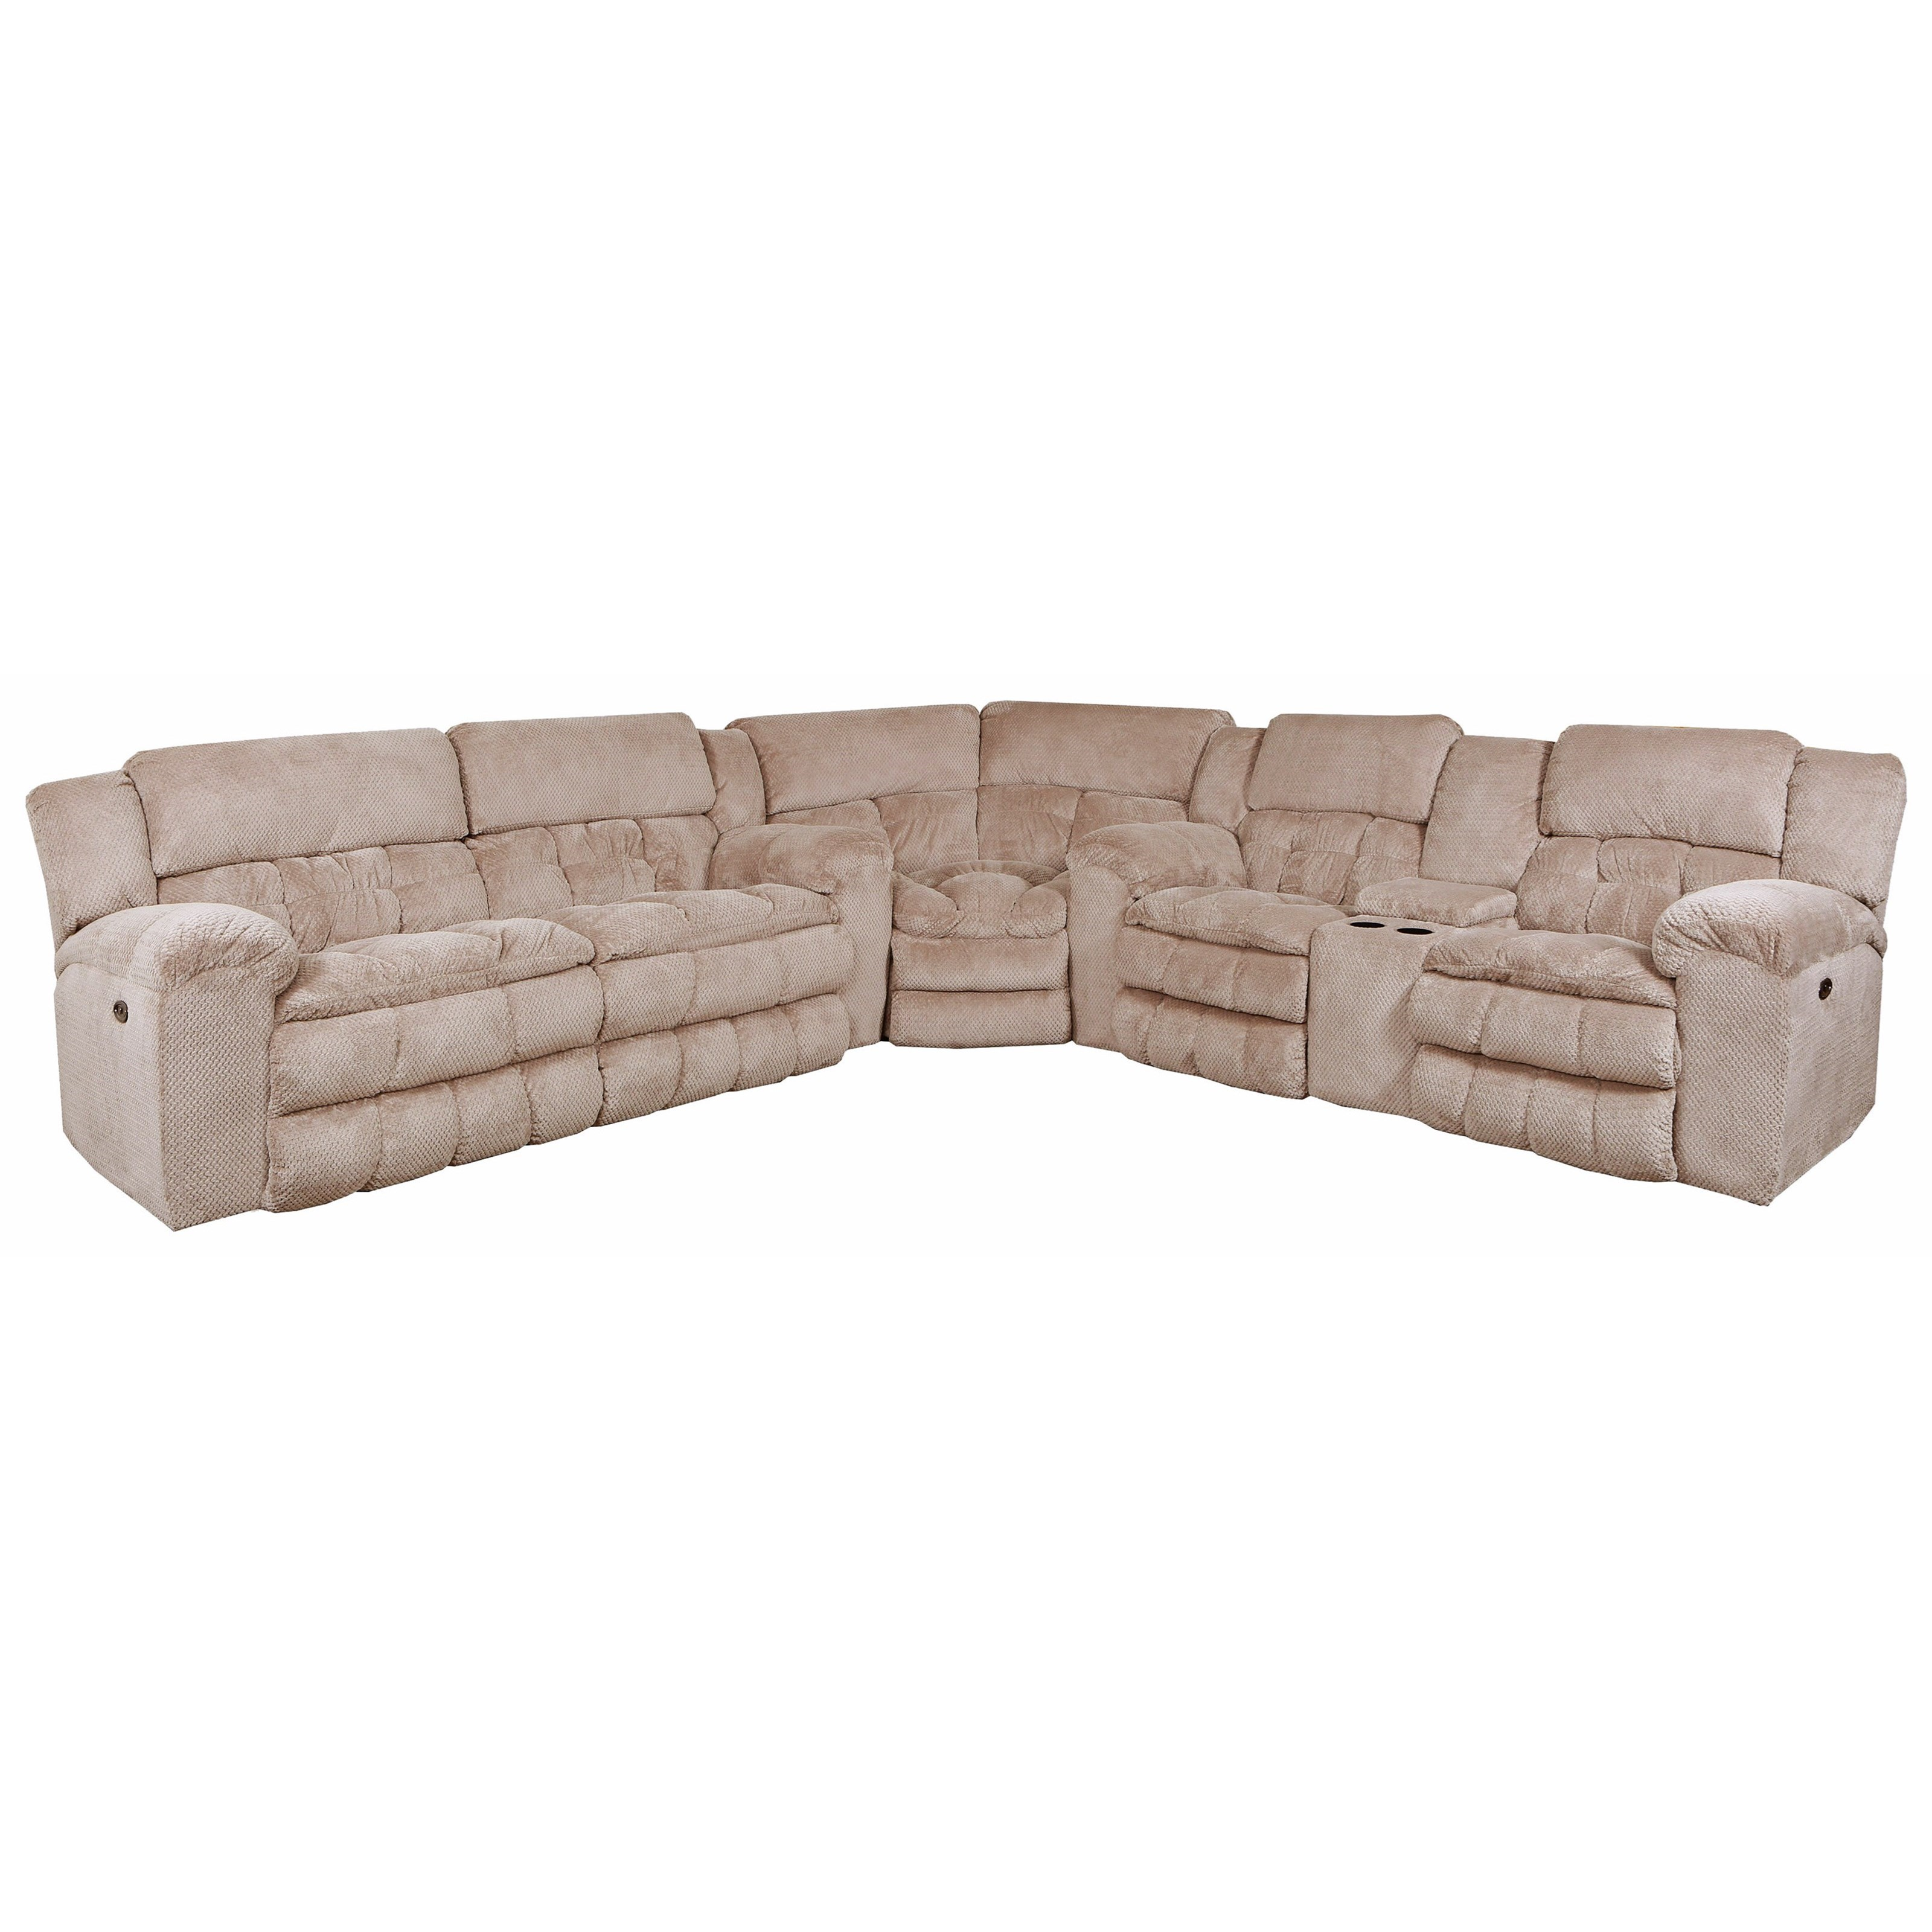 50580BR Power Reclining Sectional by United Furniture Industries at Dream Home Interiors